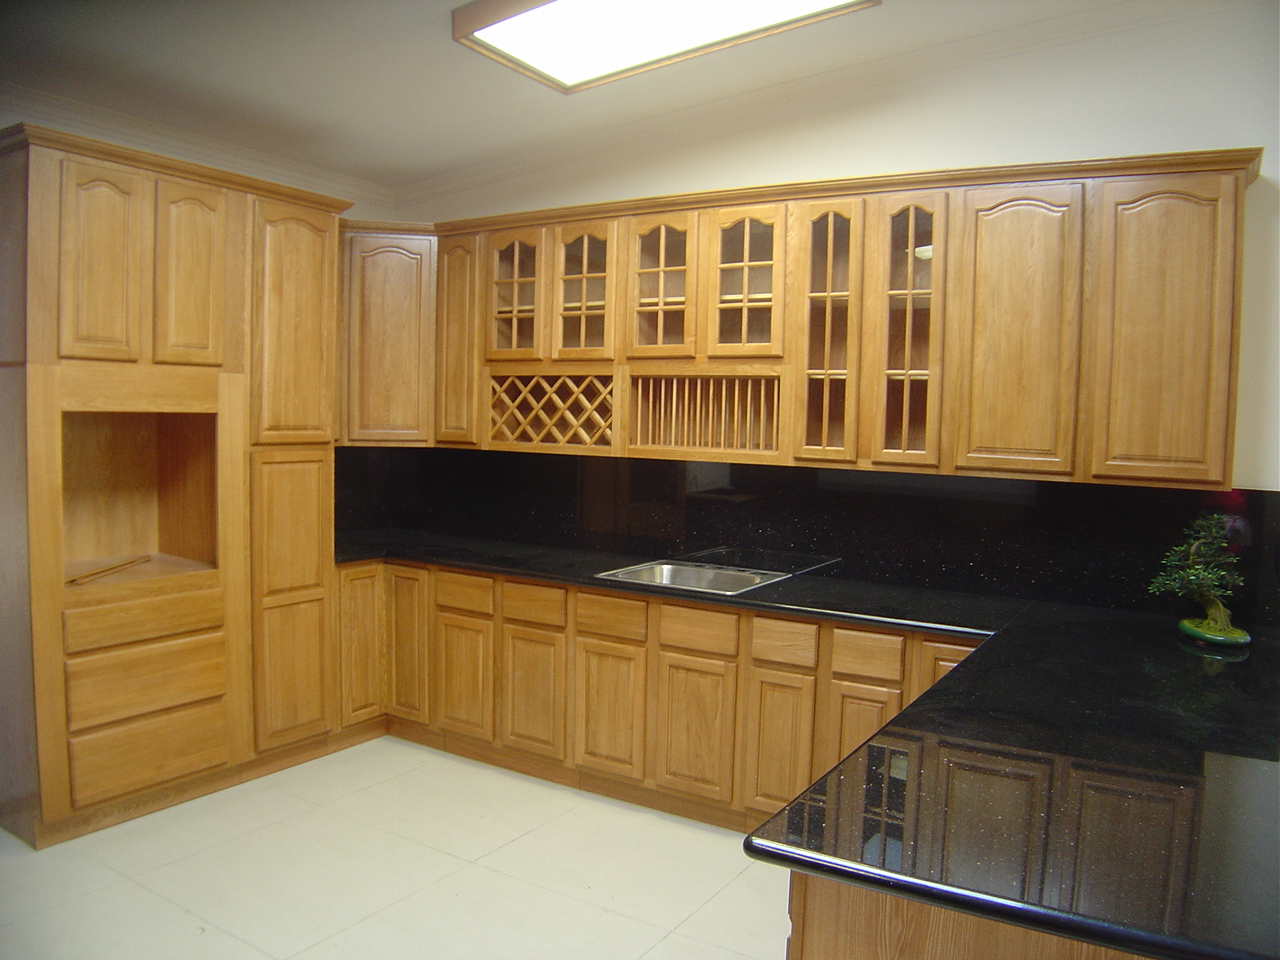 kitchen cabinets oak kitchen for interior design this luxury kitchen